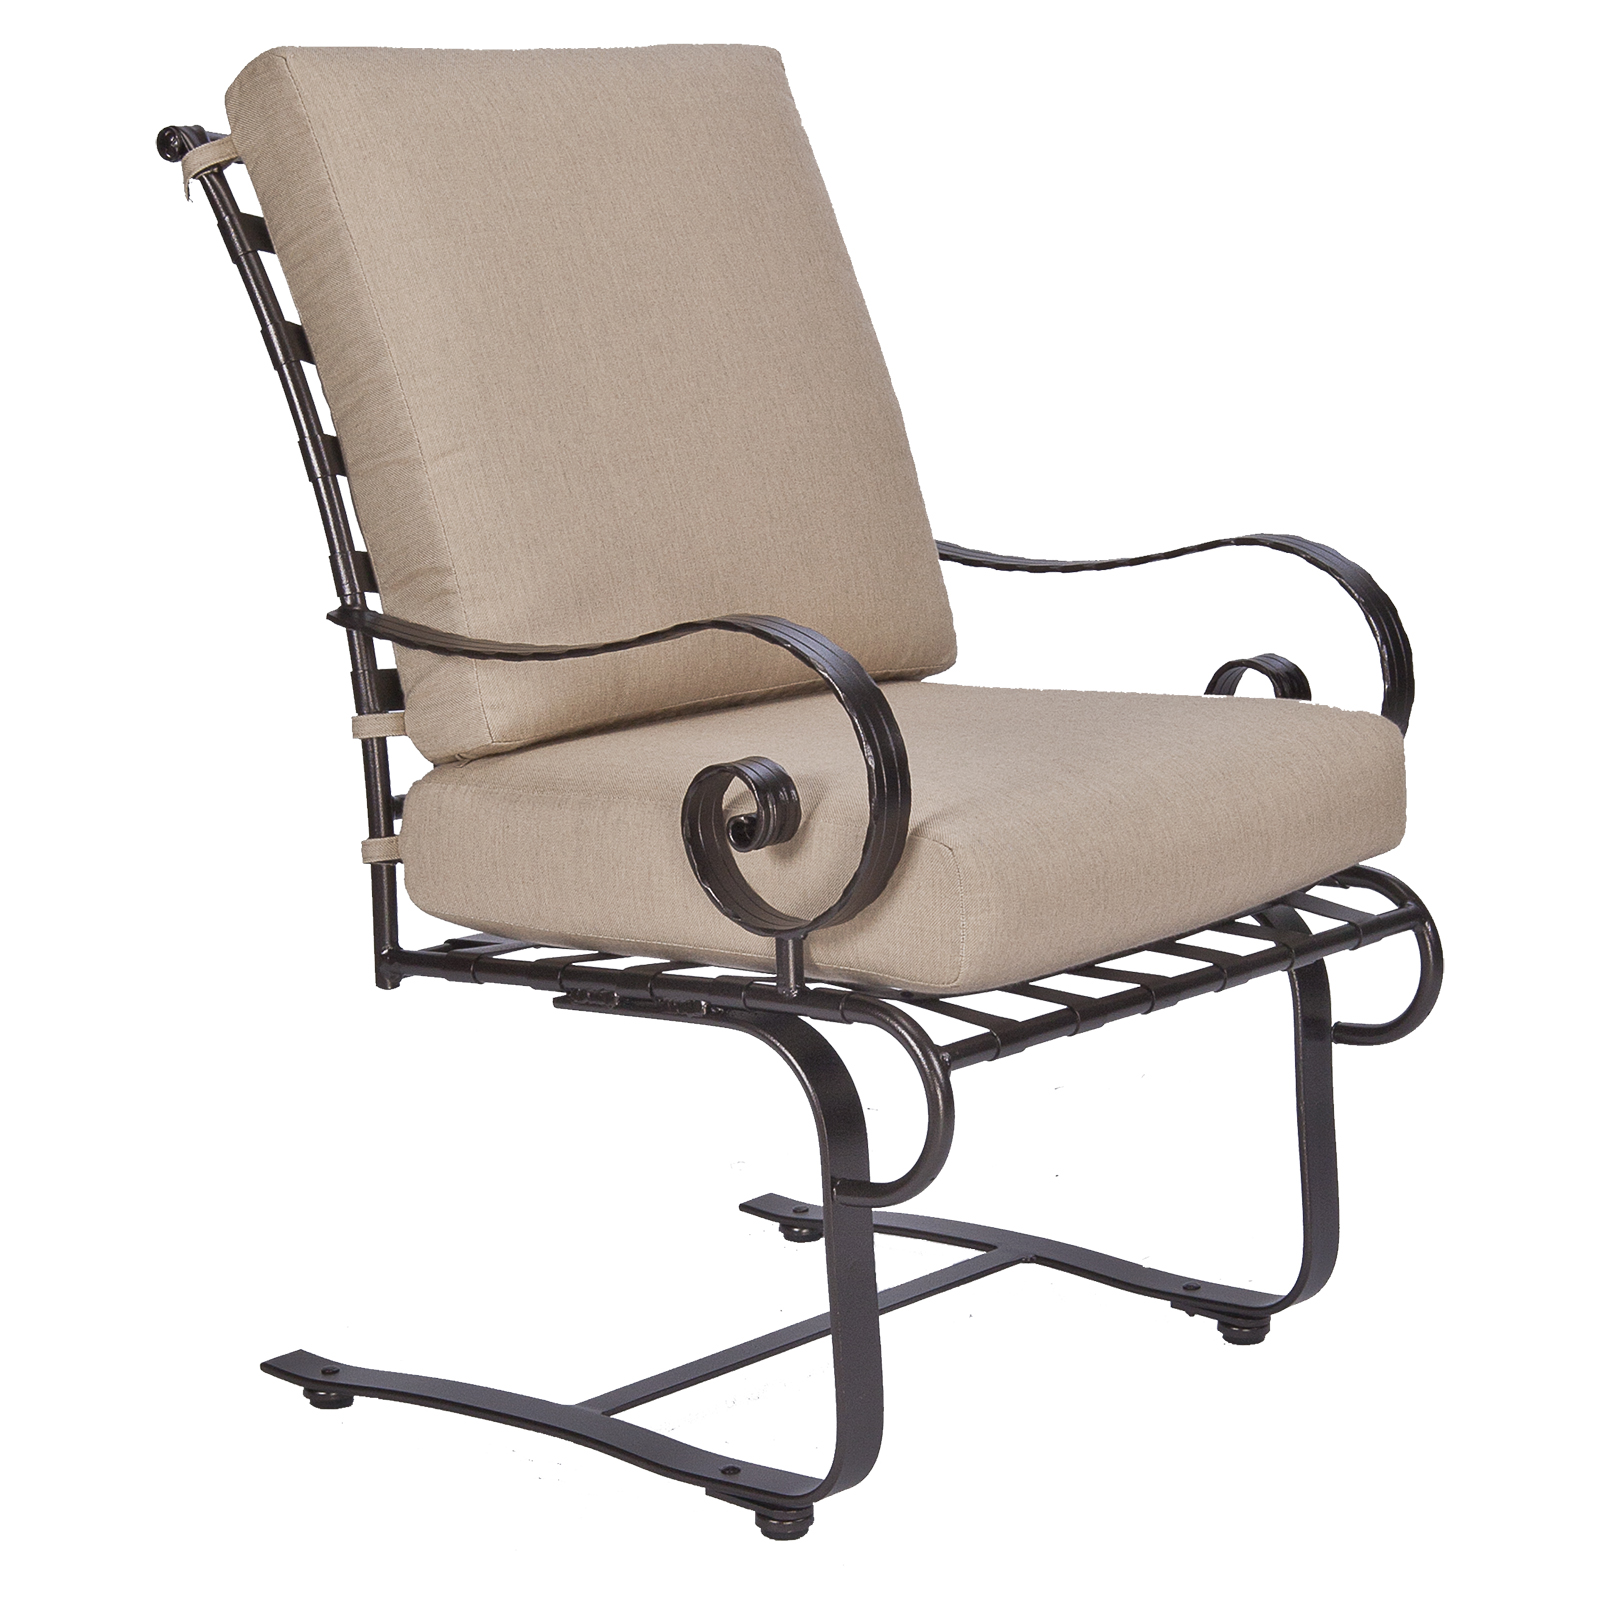 Club-Dining-Spring-Base-Arm-Chair-942-SBW_Catalog_GR35_1600-Classico-W-OW-Lee